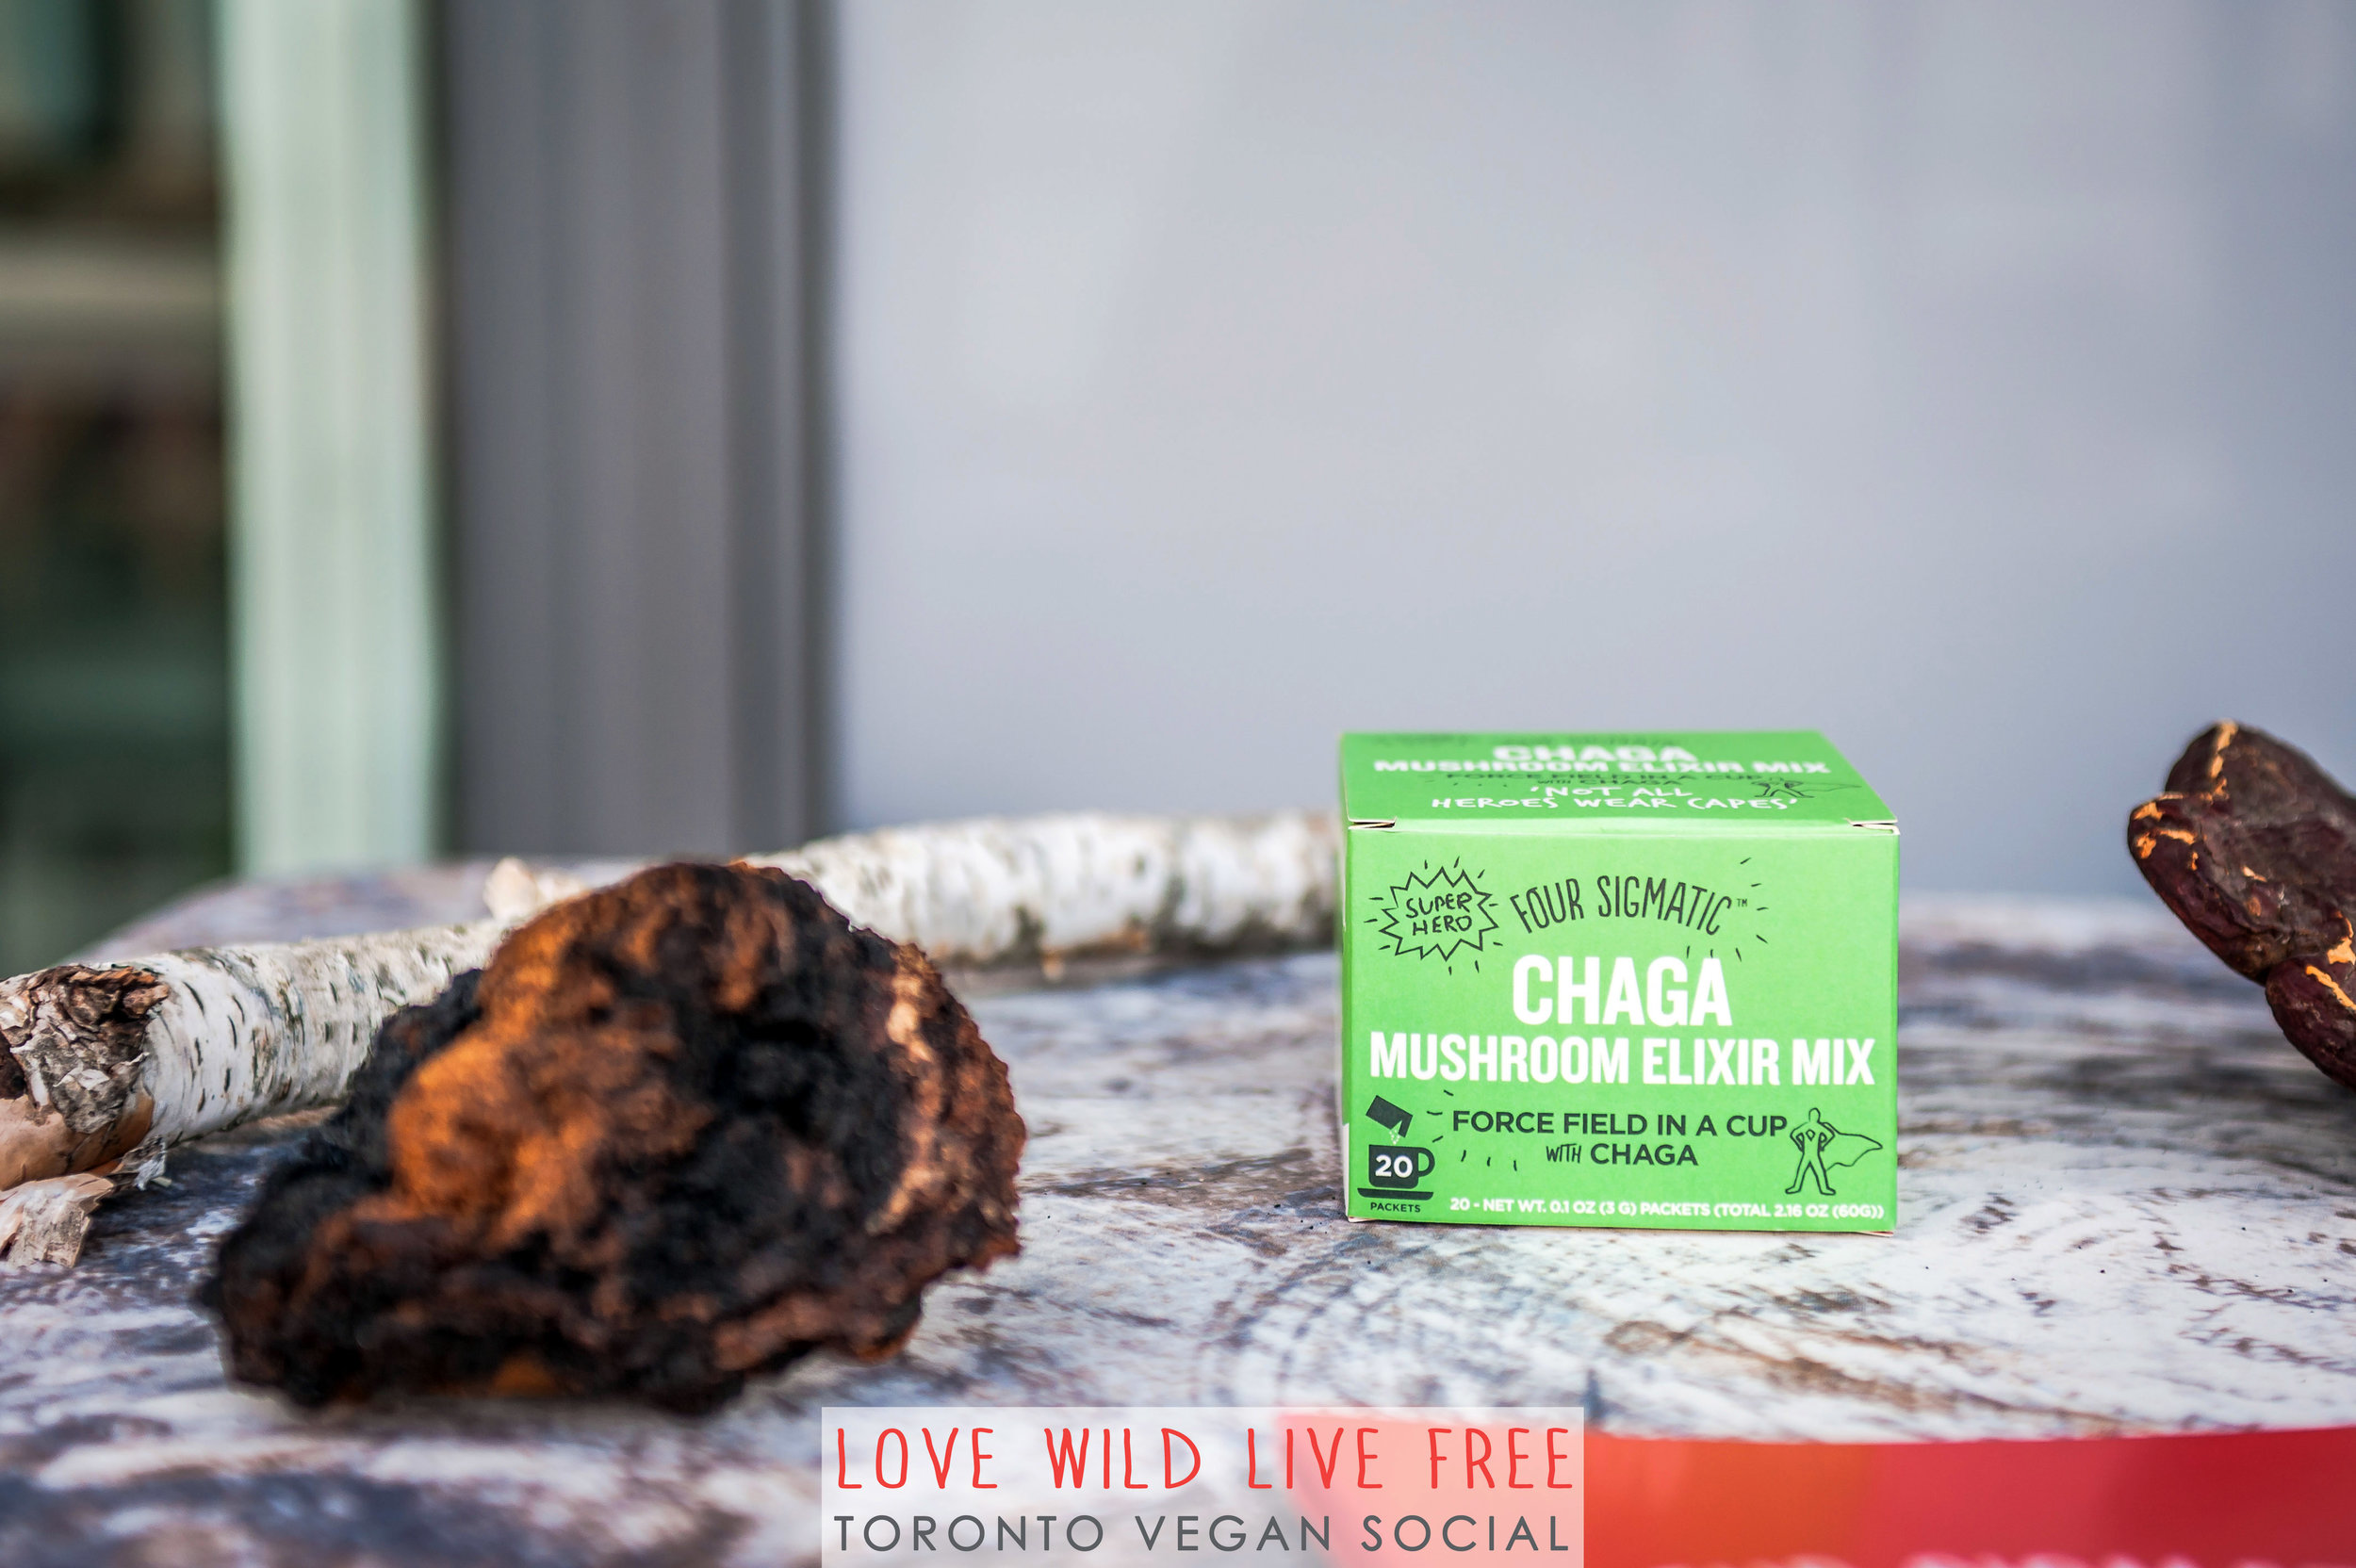 Four Sigmatic 's Chaga Mushroom Elixirs was served at the Toronto Vegan Social and guests took home instant chaga in the gift bags too!I've got a special promo code for Love Wild Live Free Readers -enter code  LOVE for 10% off  on Four Sigmatic's  website ! Photo by:  LOF Photography .